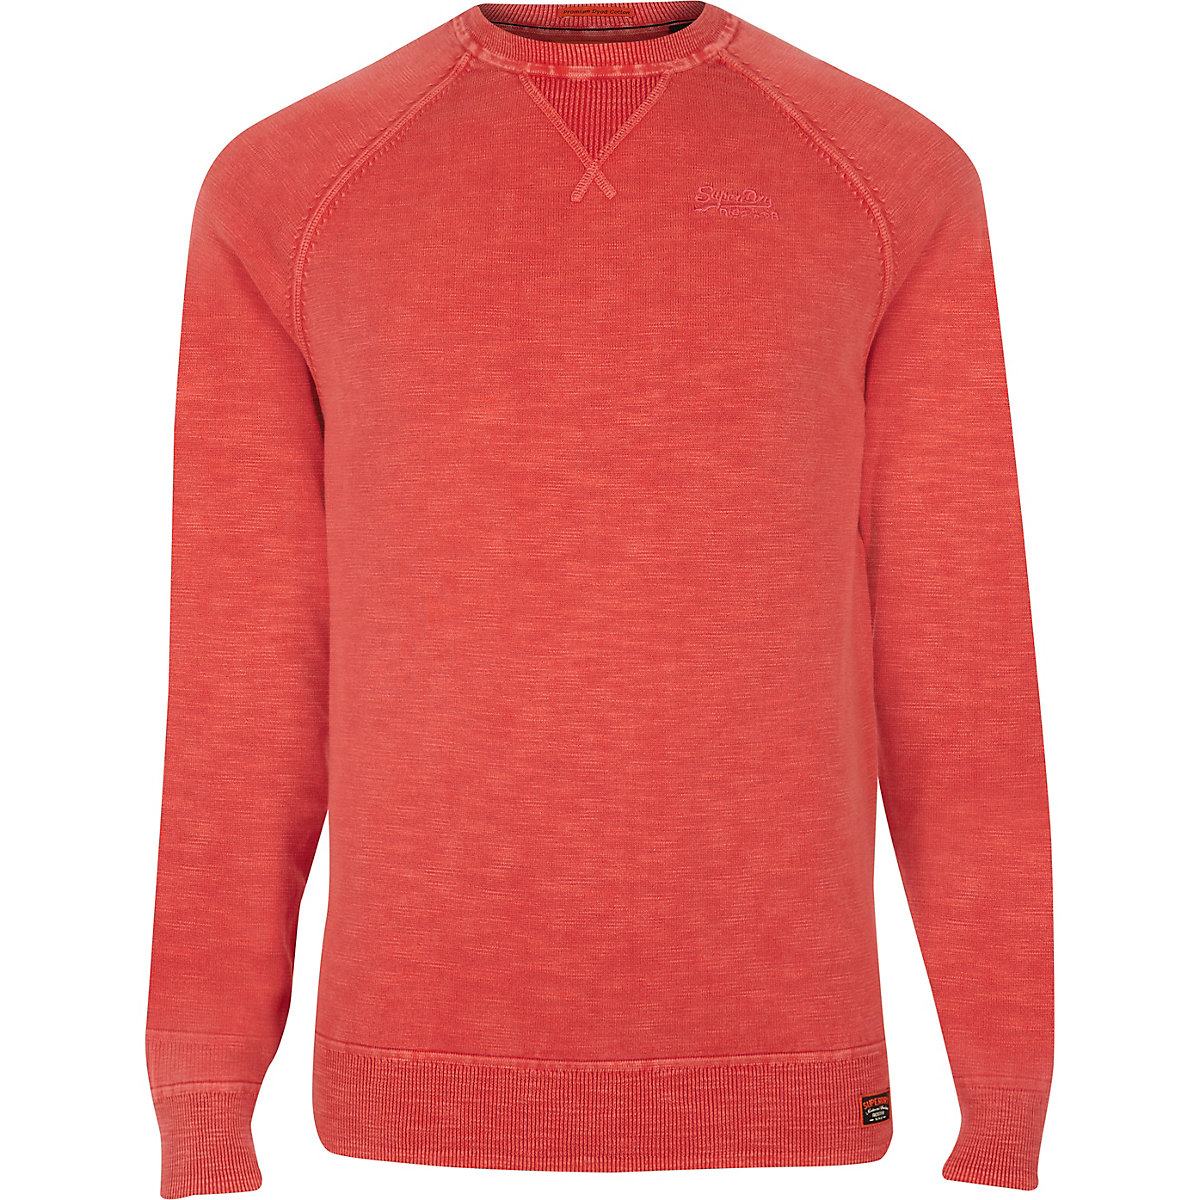 Superdry orange sweater